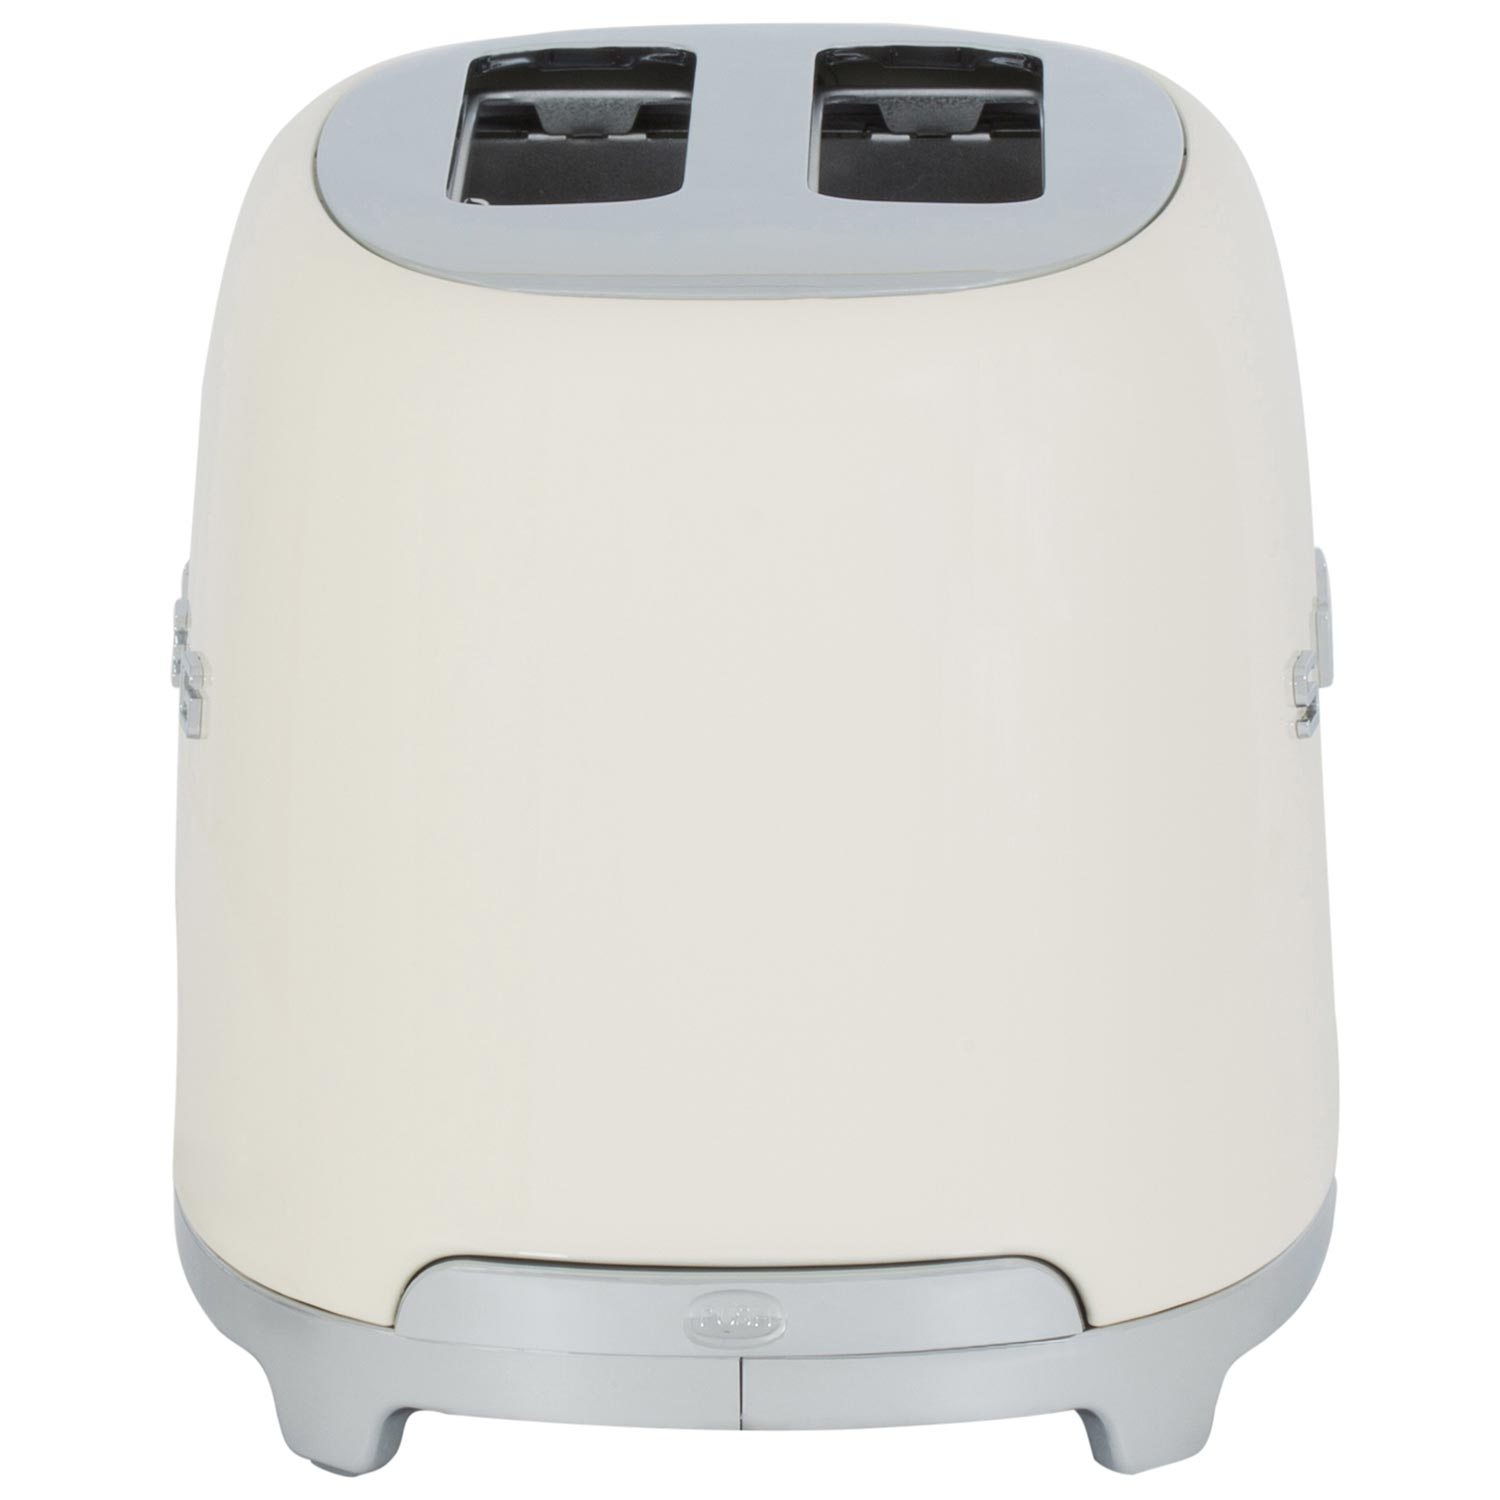 Smeg 2 Slice Toaster - Cream - 5